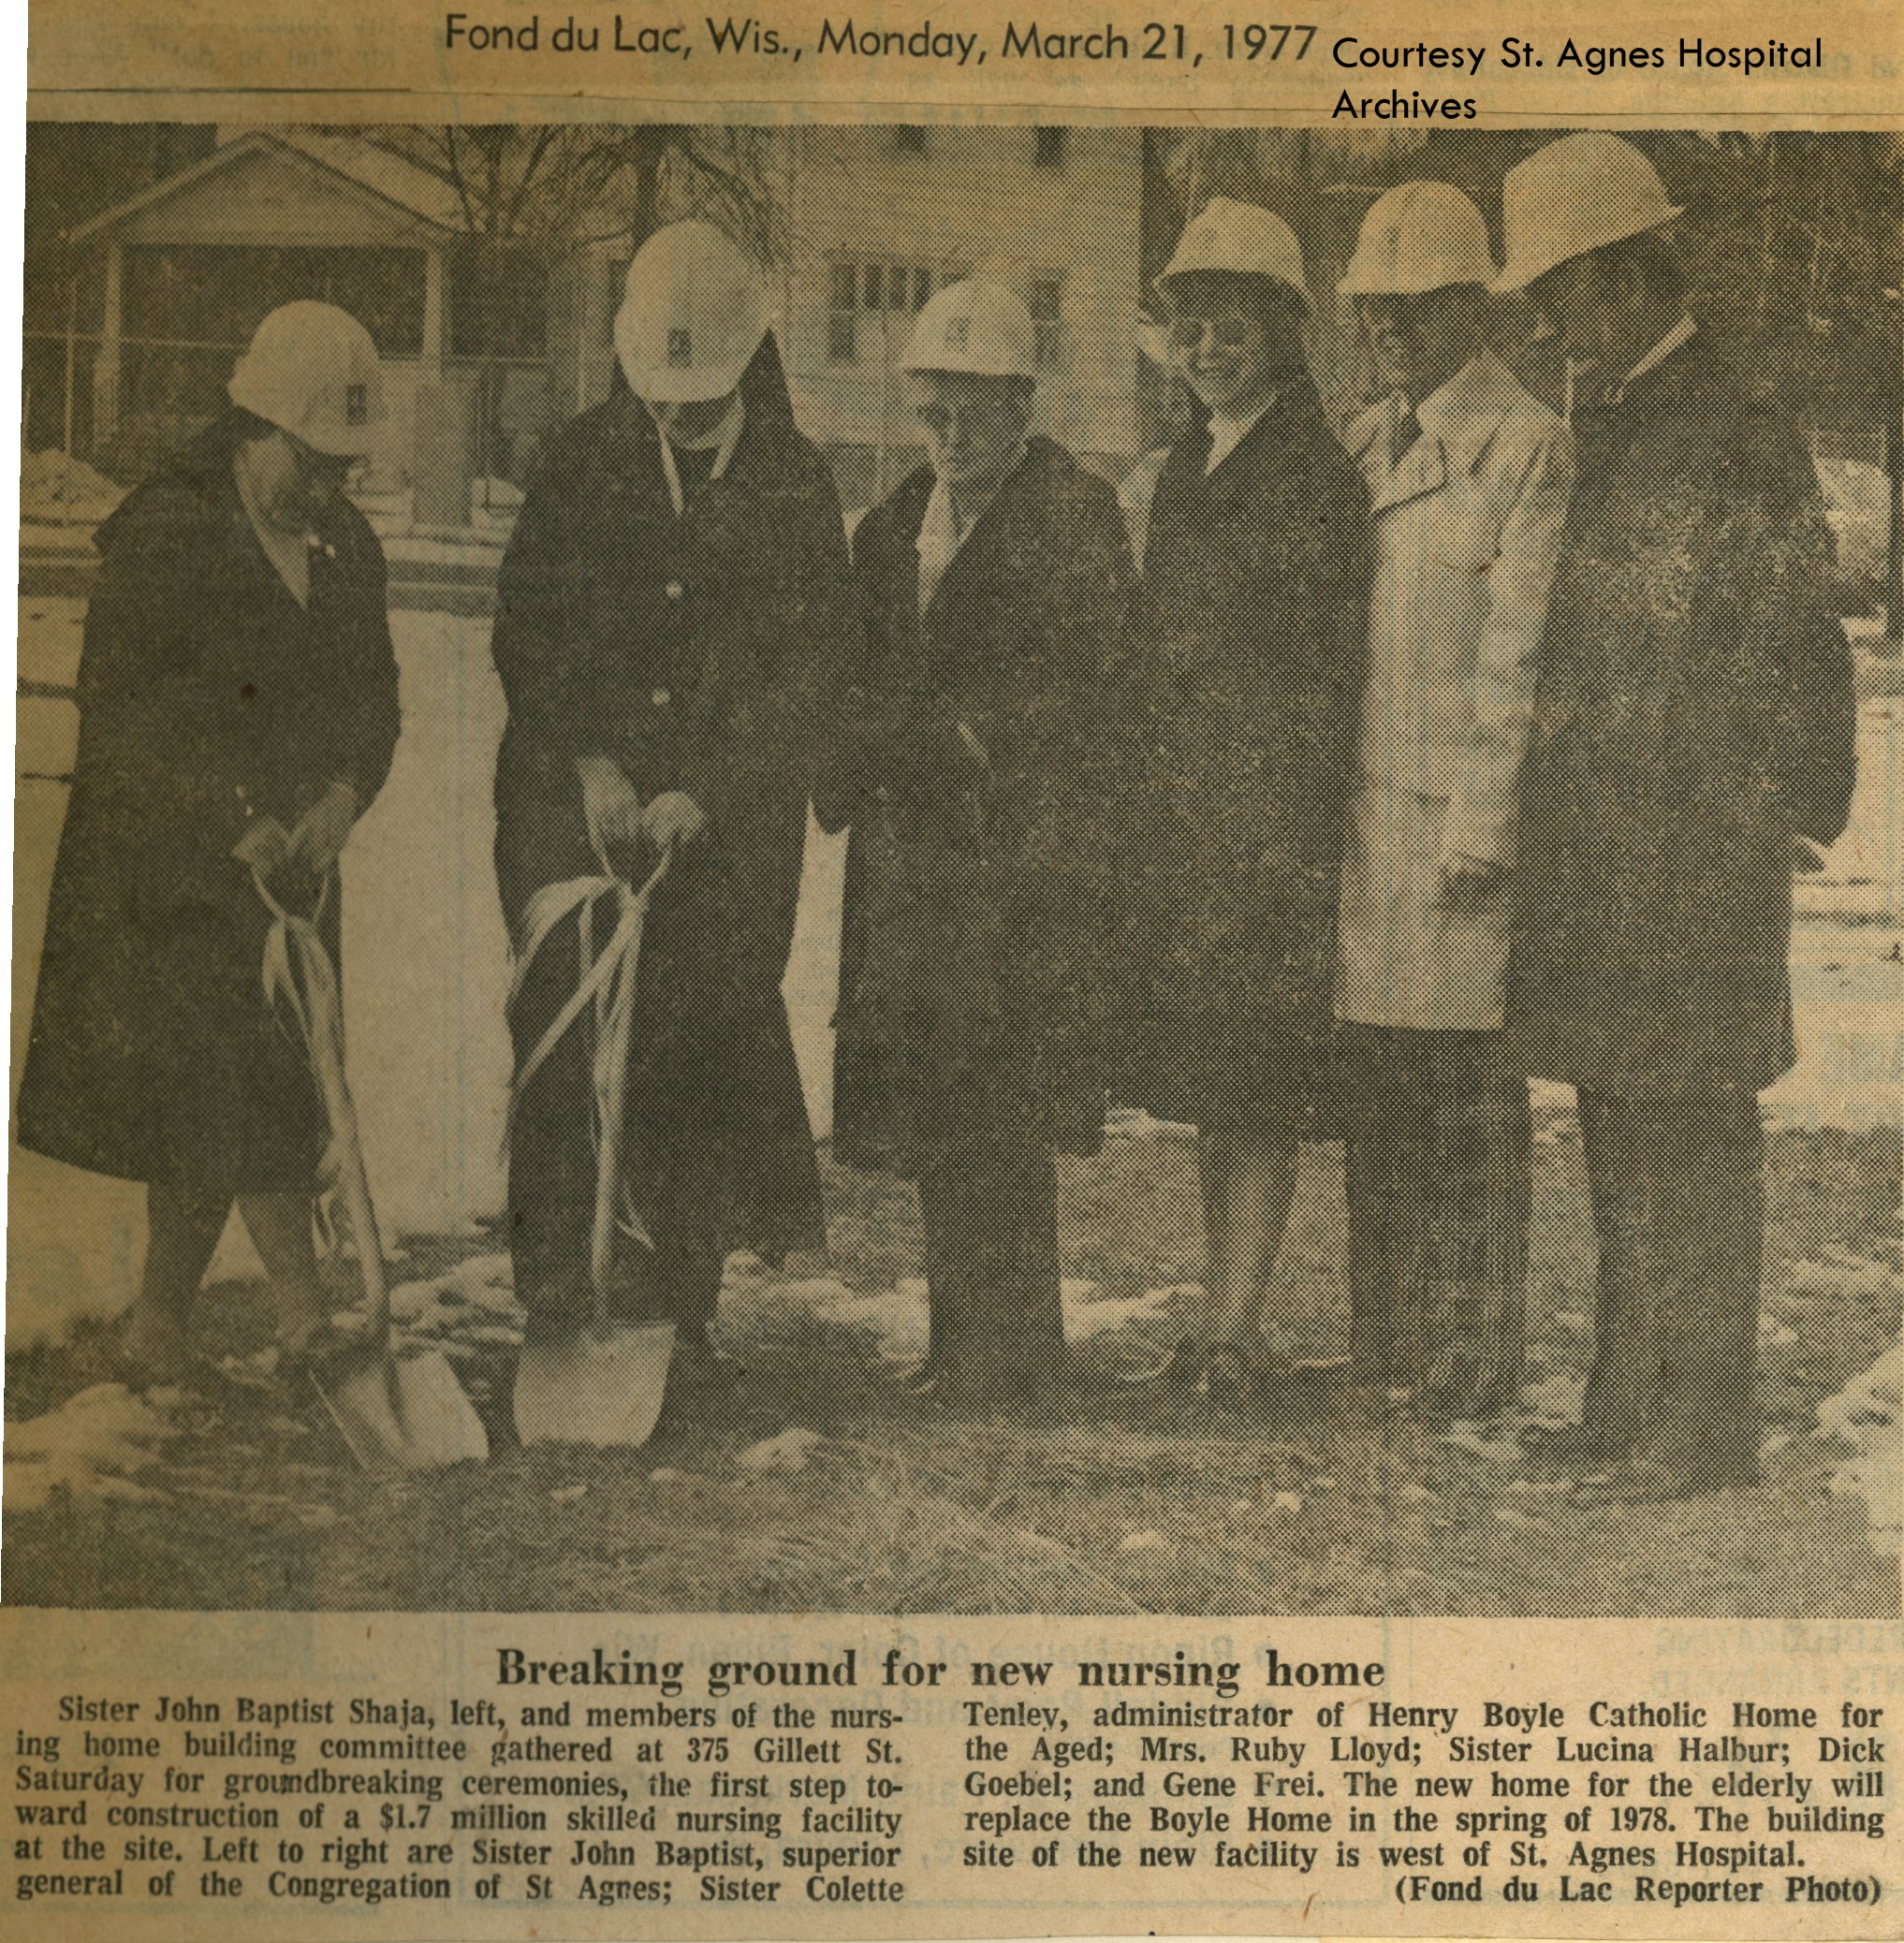 News clipping from groundbreaking ceremony for St. Francis Home, 1977.